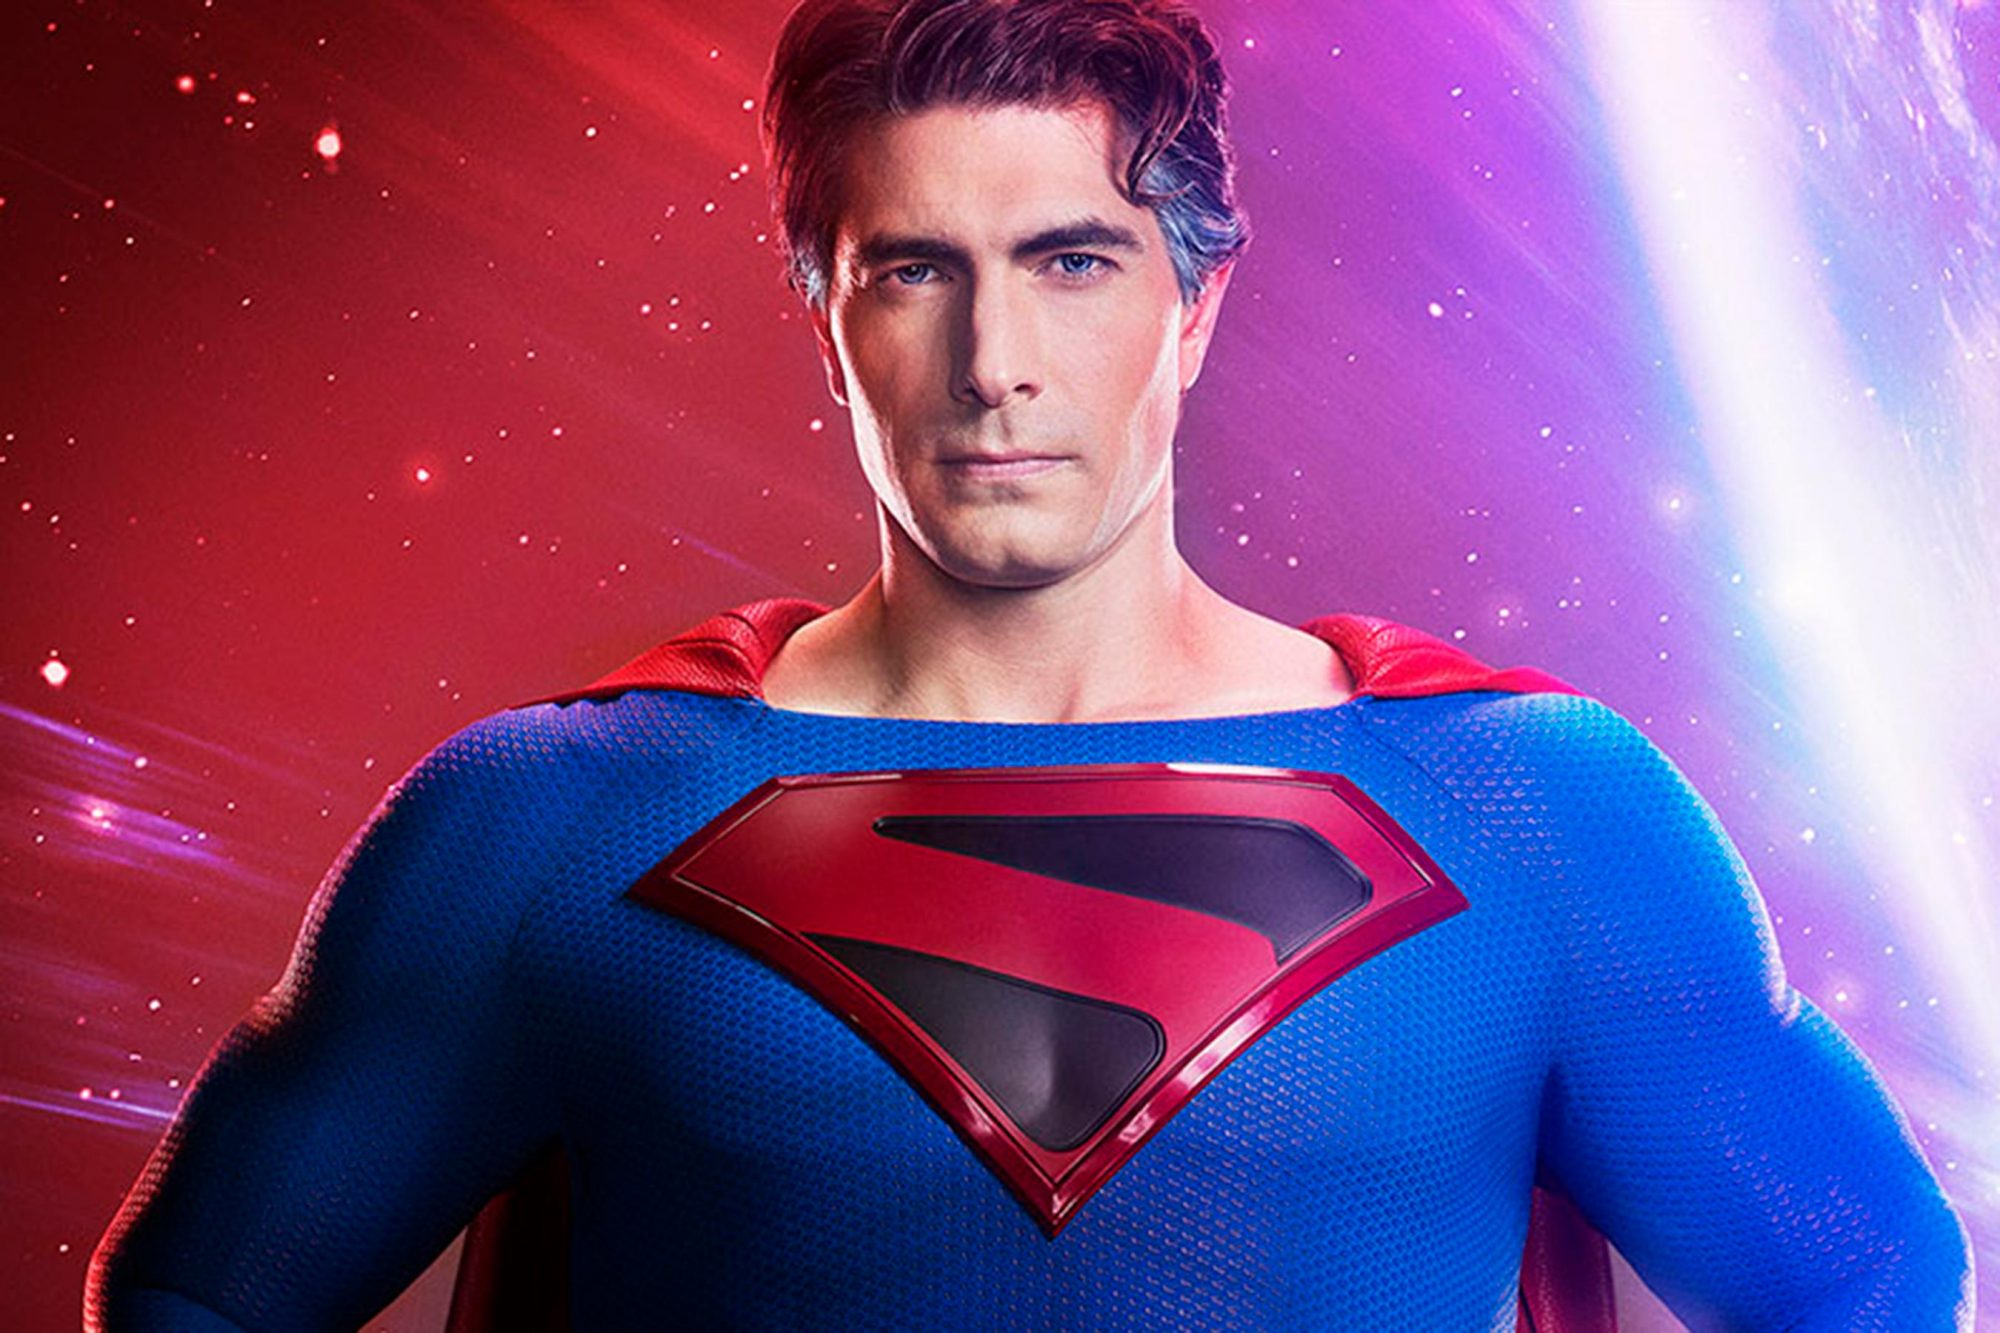 """DC's Legends of Tomorrow """"Crisis on Infinite Earths"""